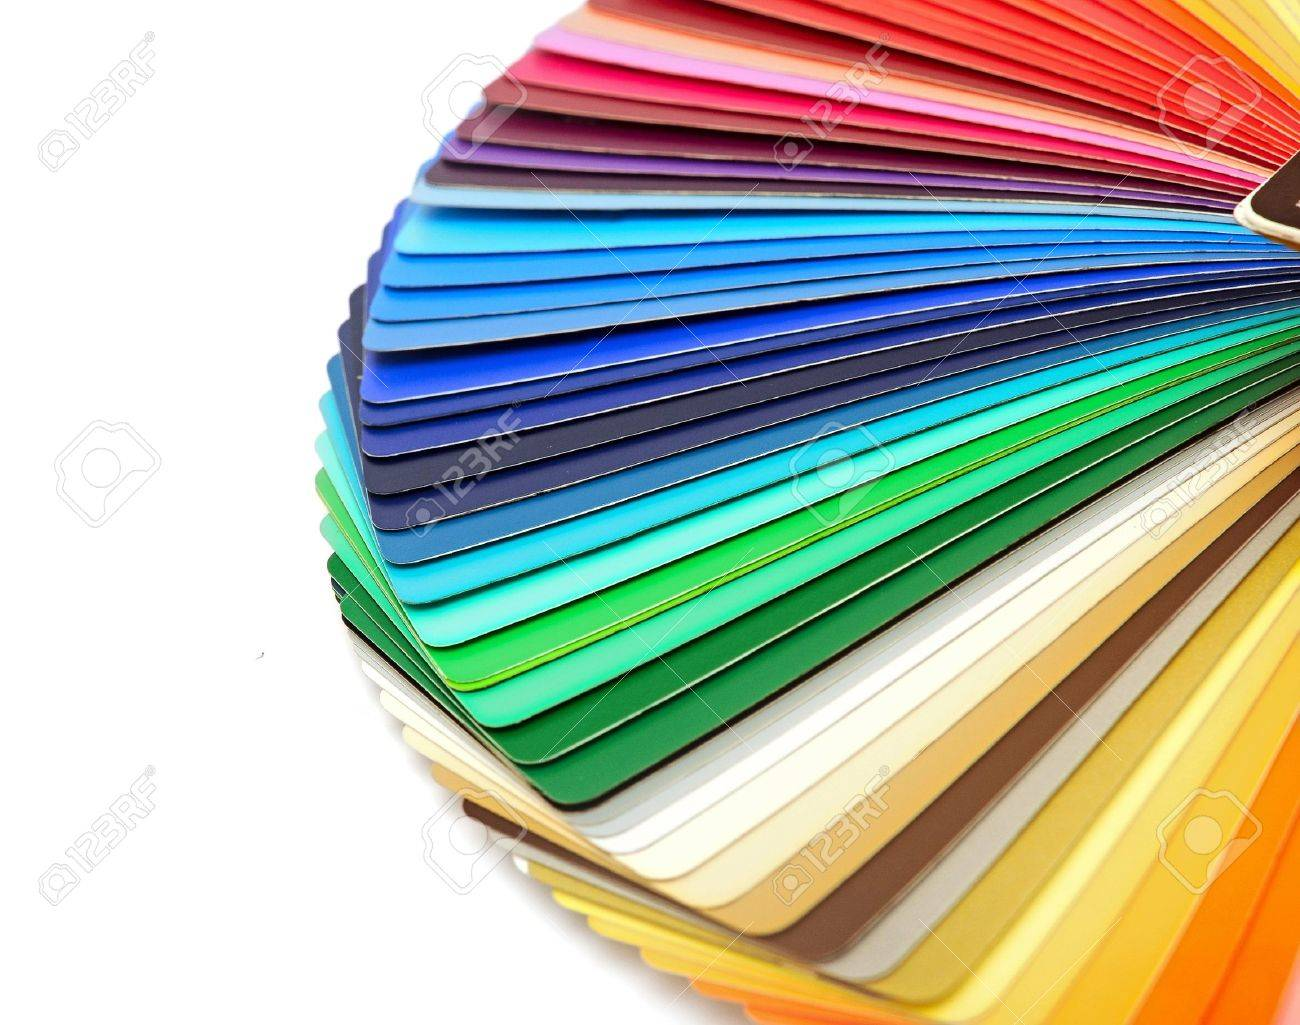 Color chart rainbow - Color Guide Spectrum Swatch Samples Rainbow On White Background Stock Photo 15387423